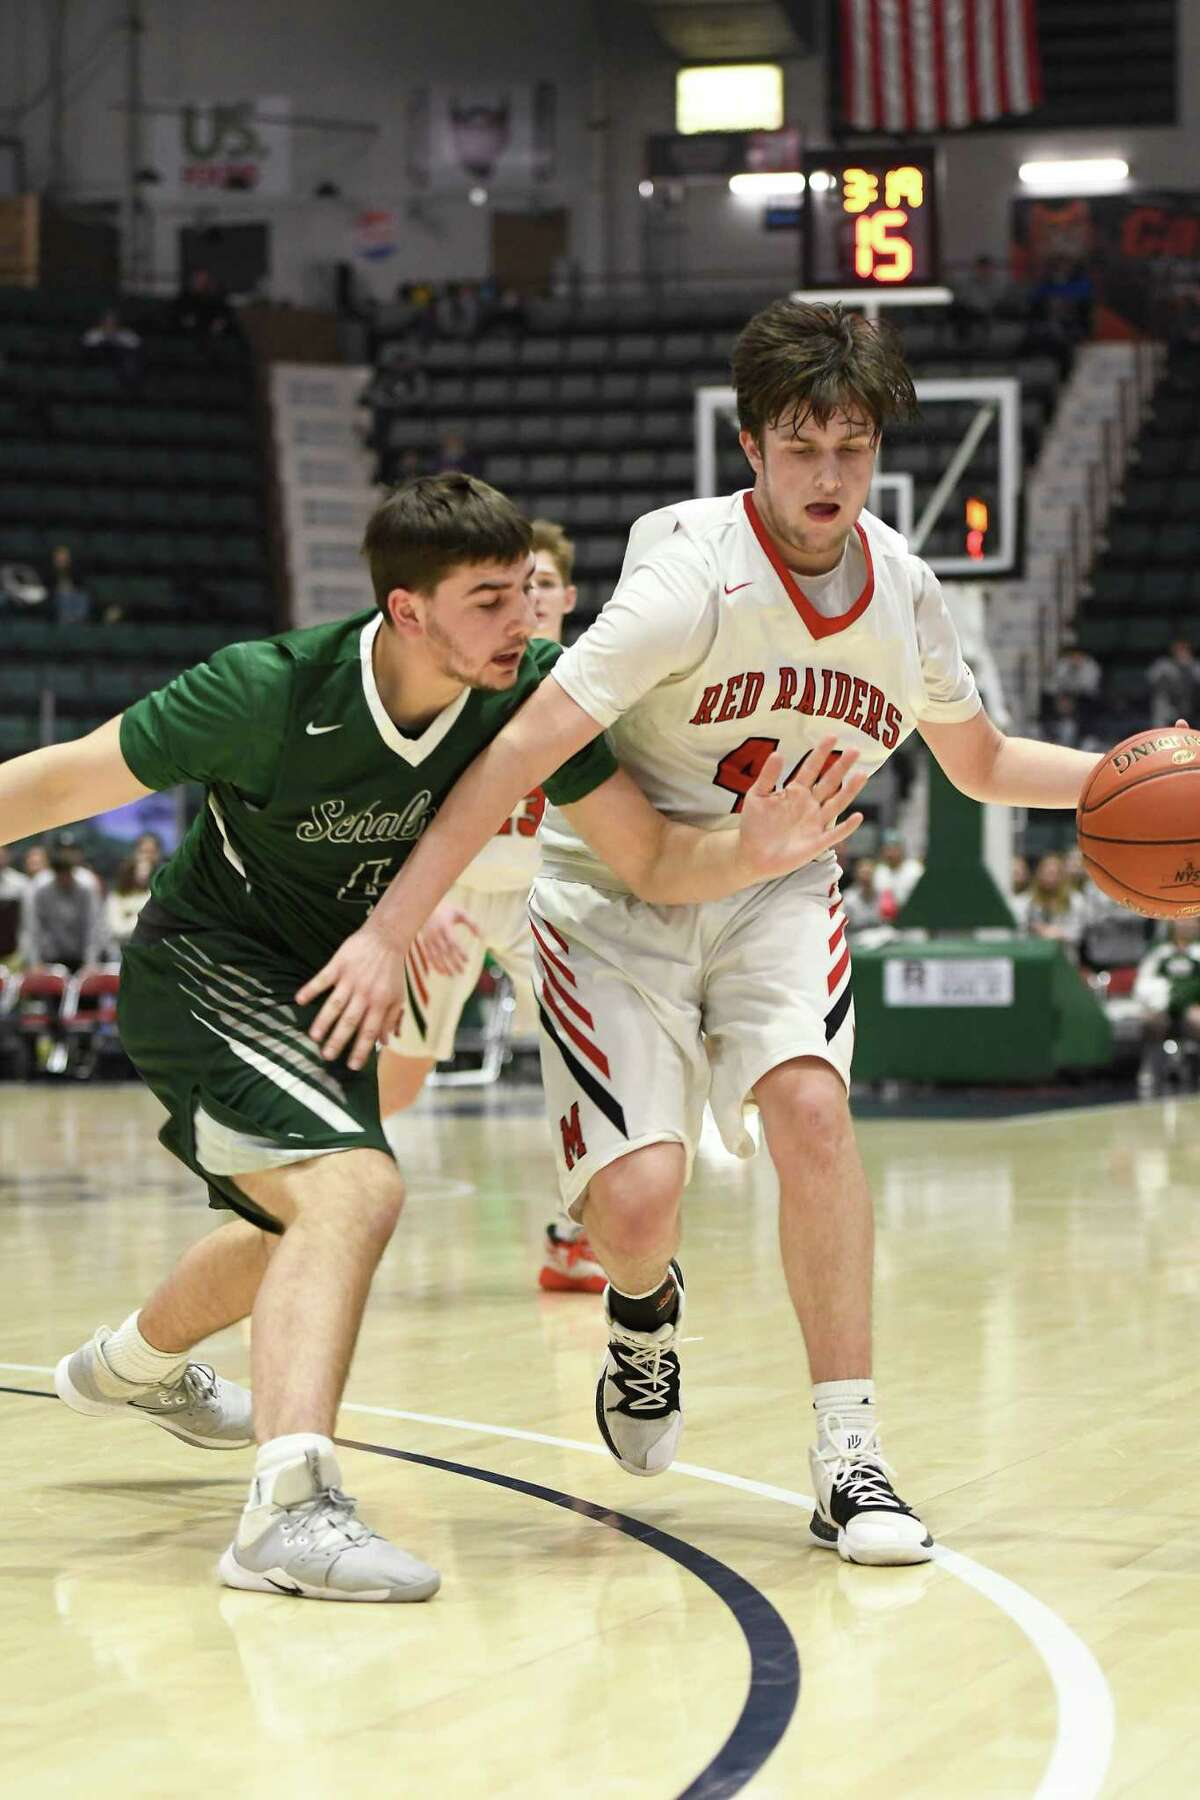 Schalmont's Sean Clifford pressures Mechanicville's Devin Garland during the Class B Sectional Final at Cool Insuring Arena in Glens Falls, N.Y., on Friday, Mar. 6, 2020. (Jenn March, Special to the Times Union)